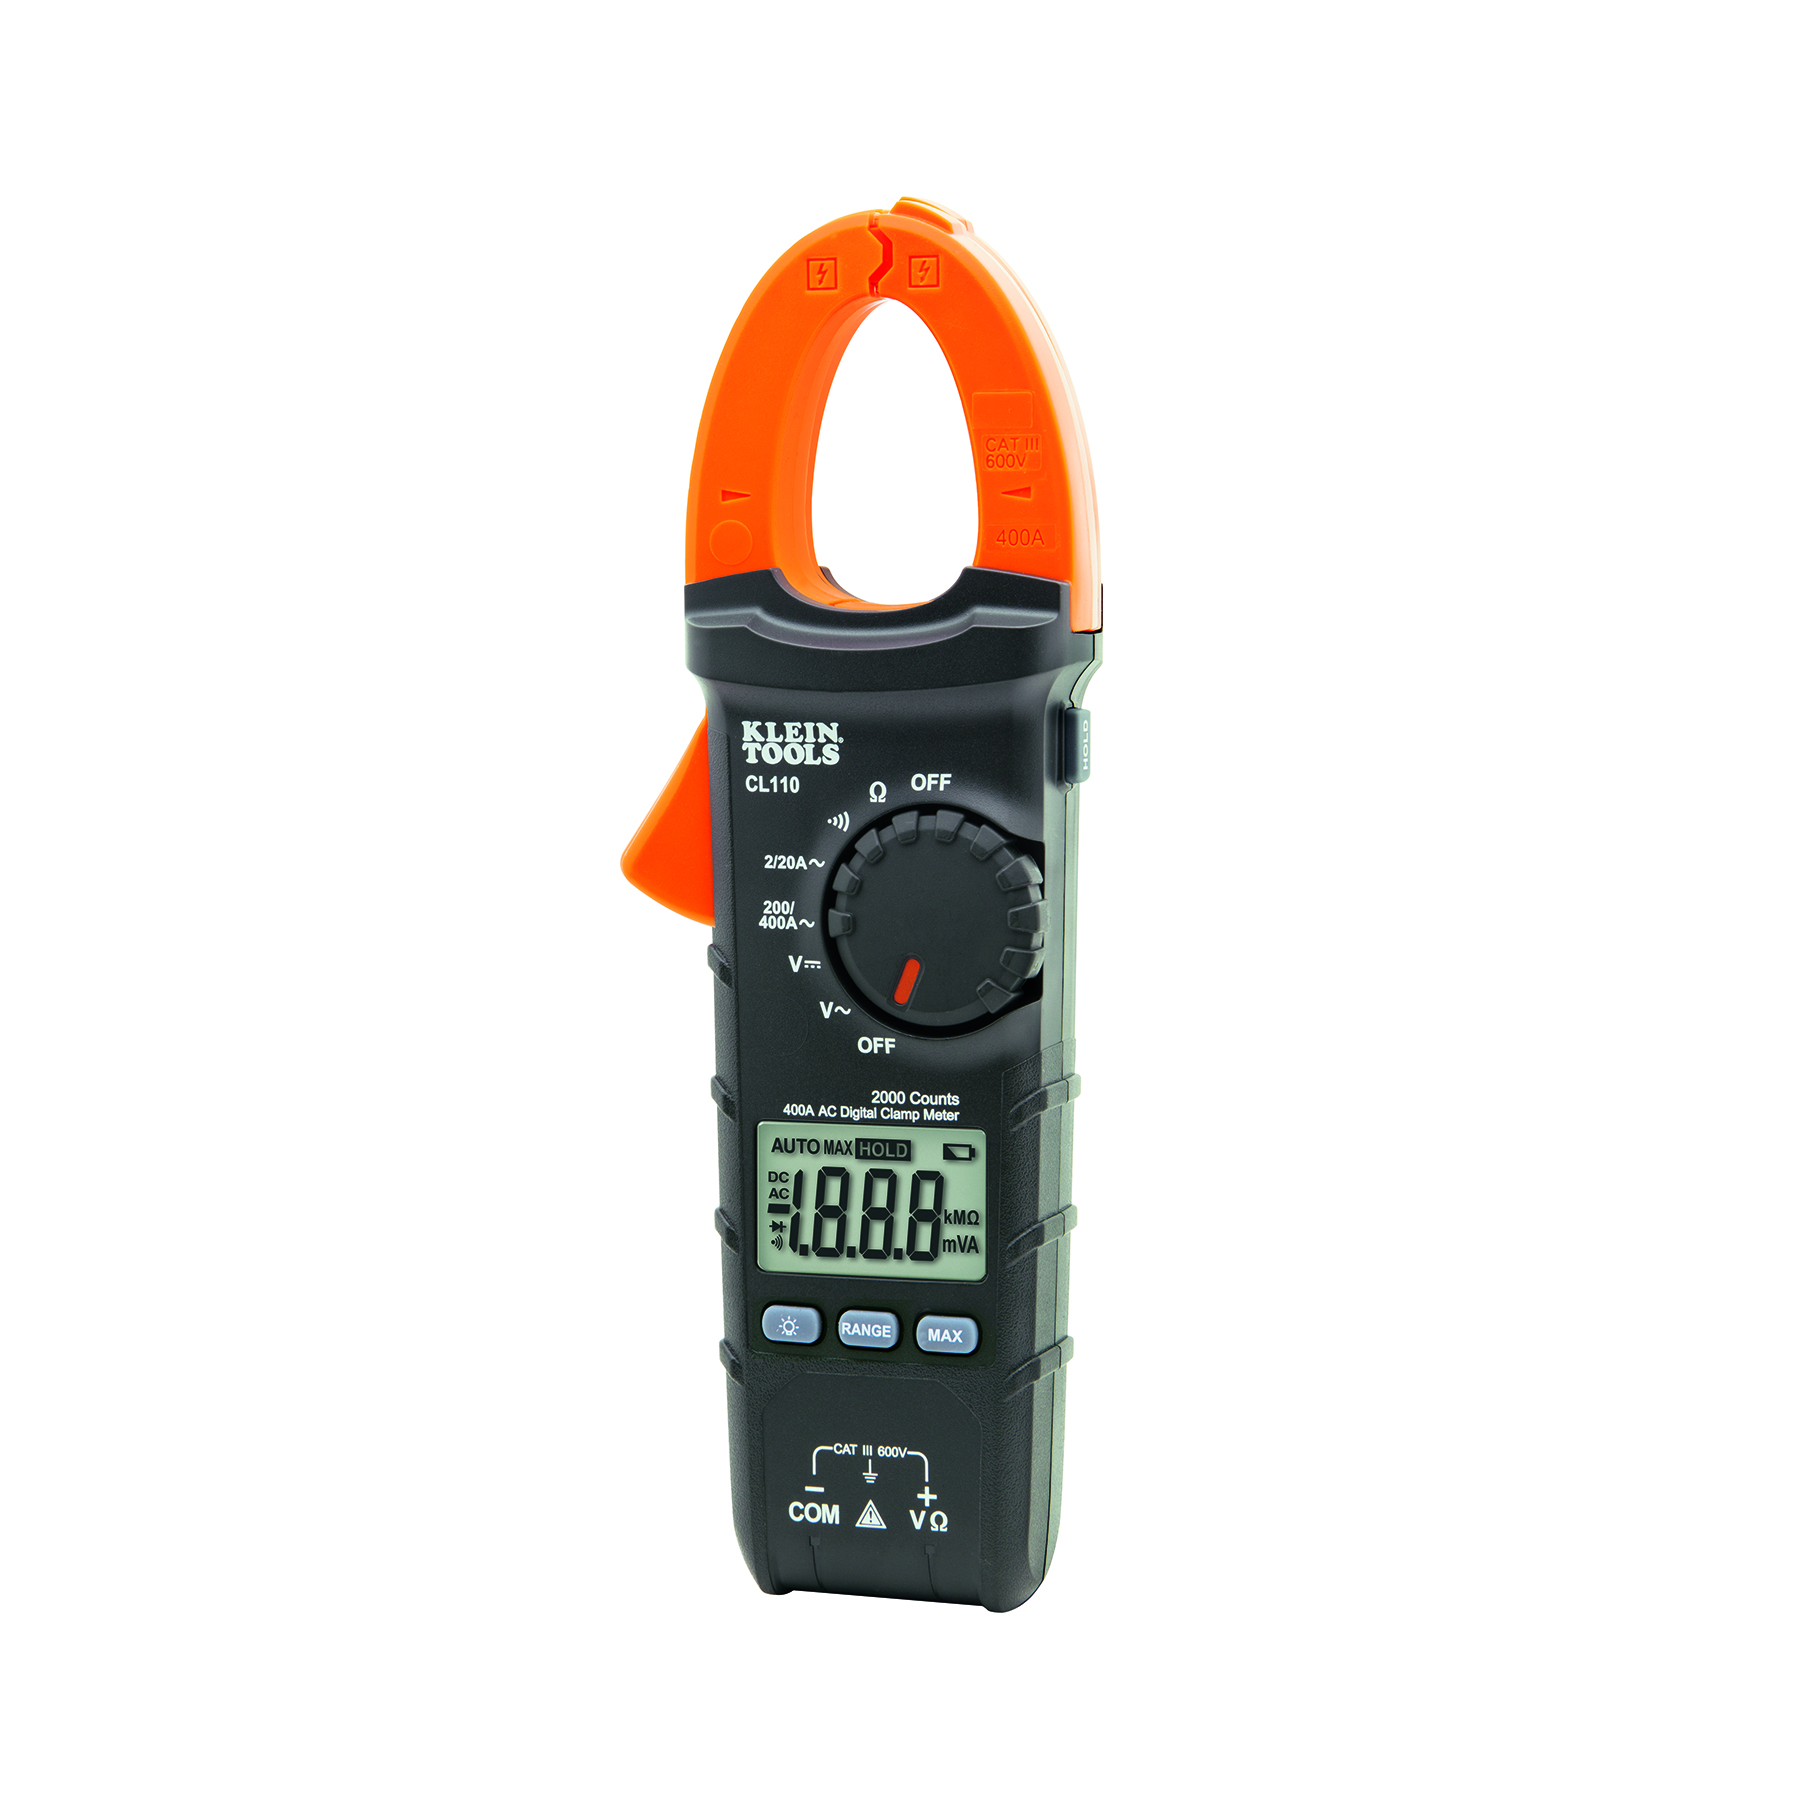 Digital Clamp Meter Ac Auto Ranging 400 Amp Cl110 Klein Tools Lcd Multimeter Dc Voltmeter Ammeter Ohm Circuit Checker Images